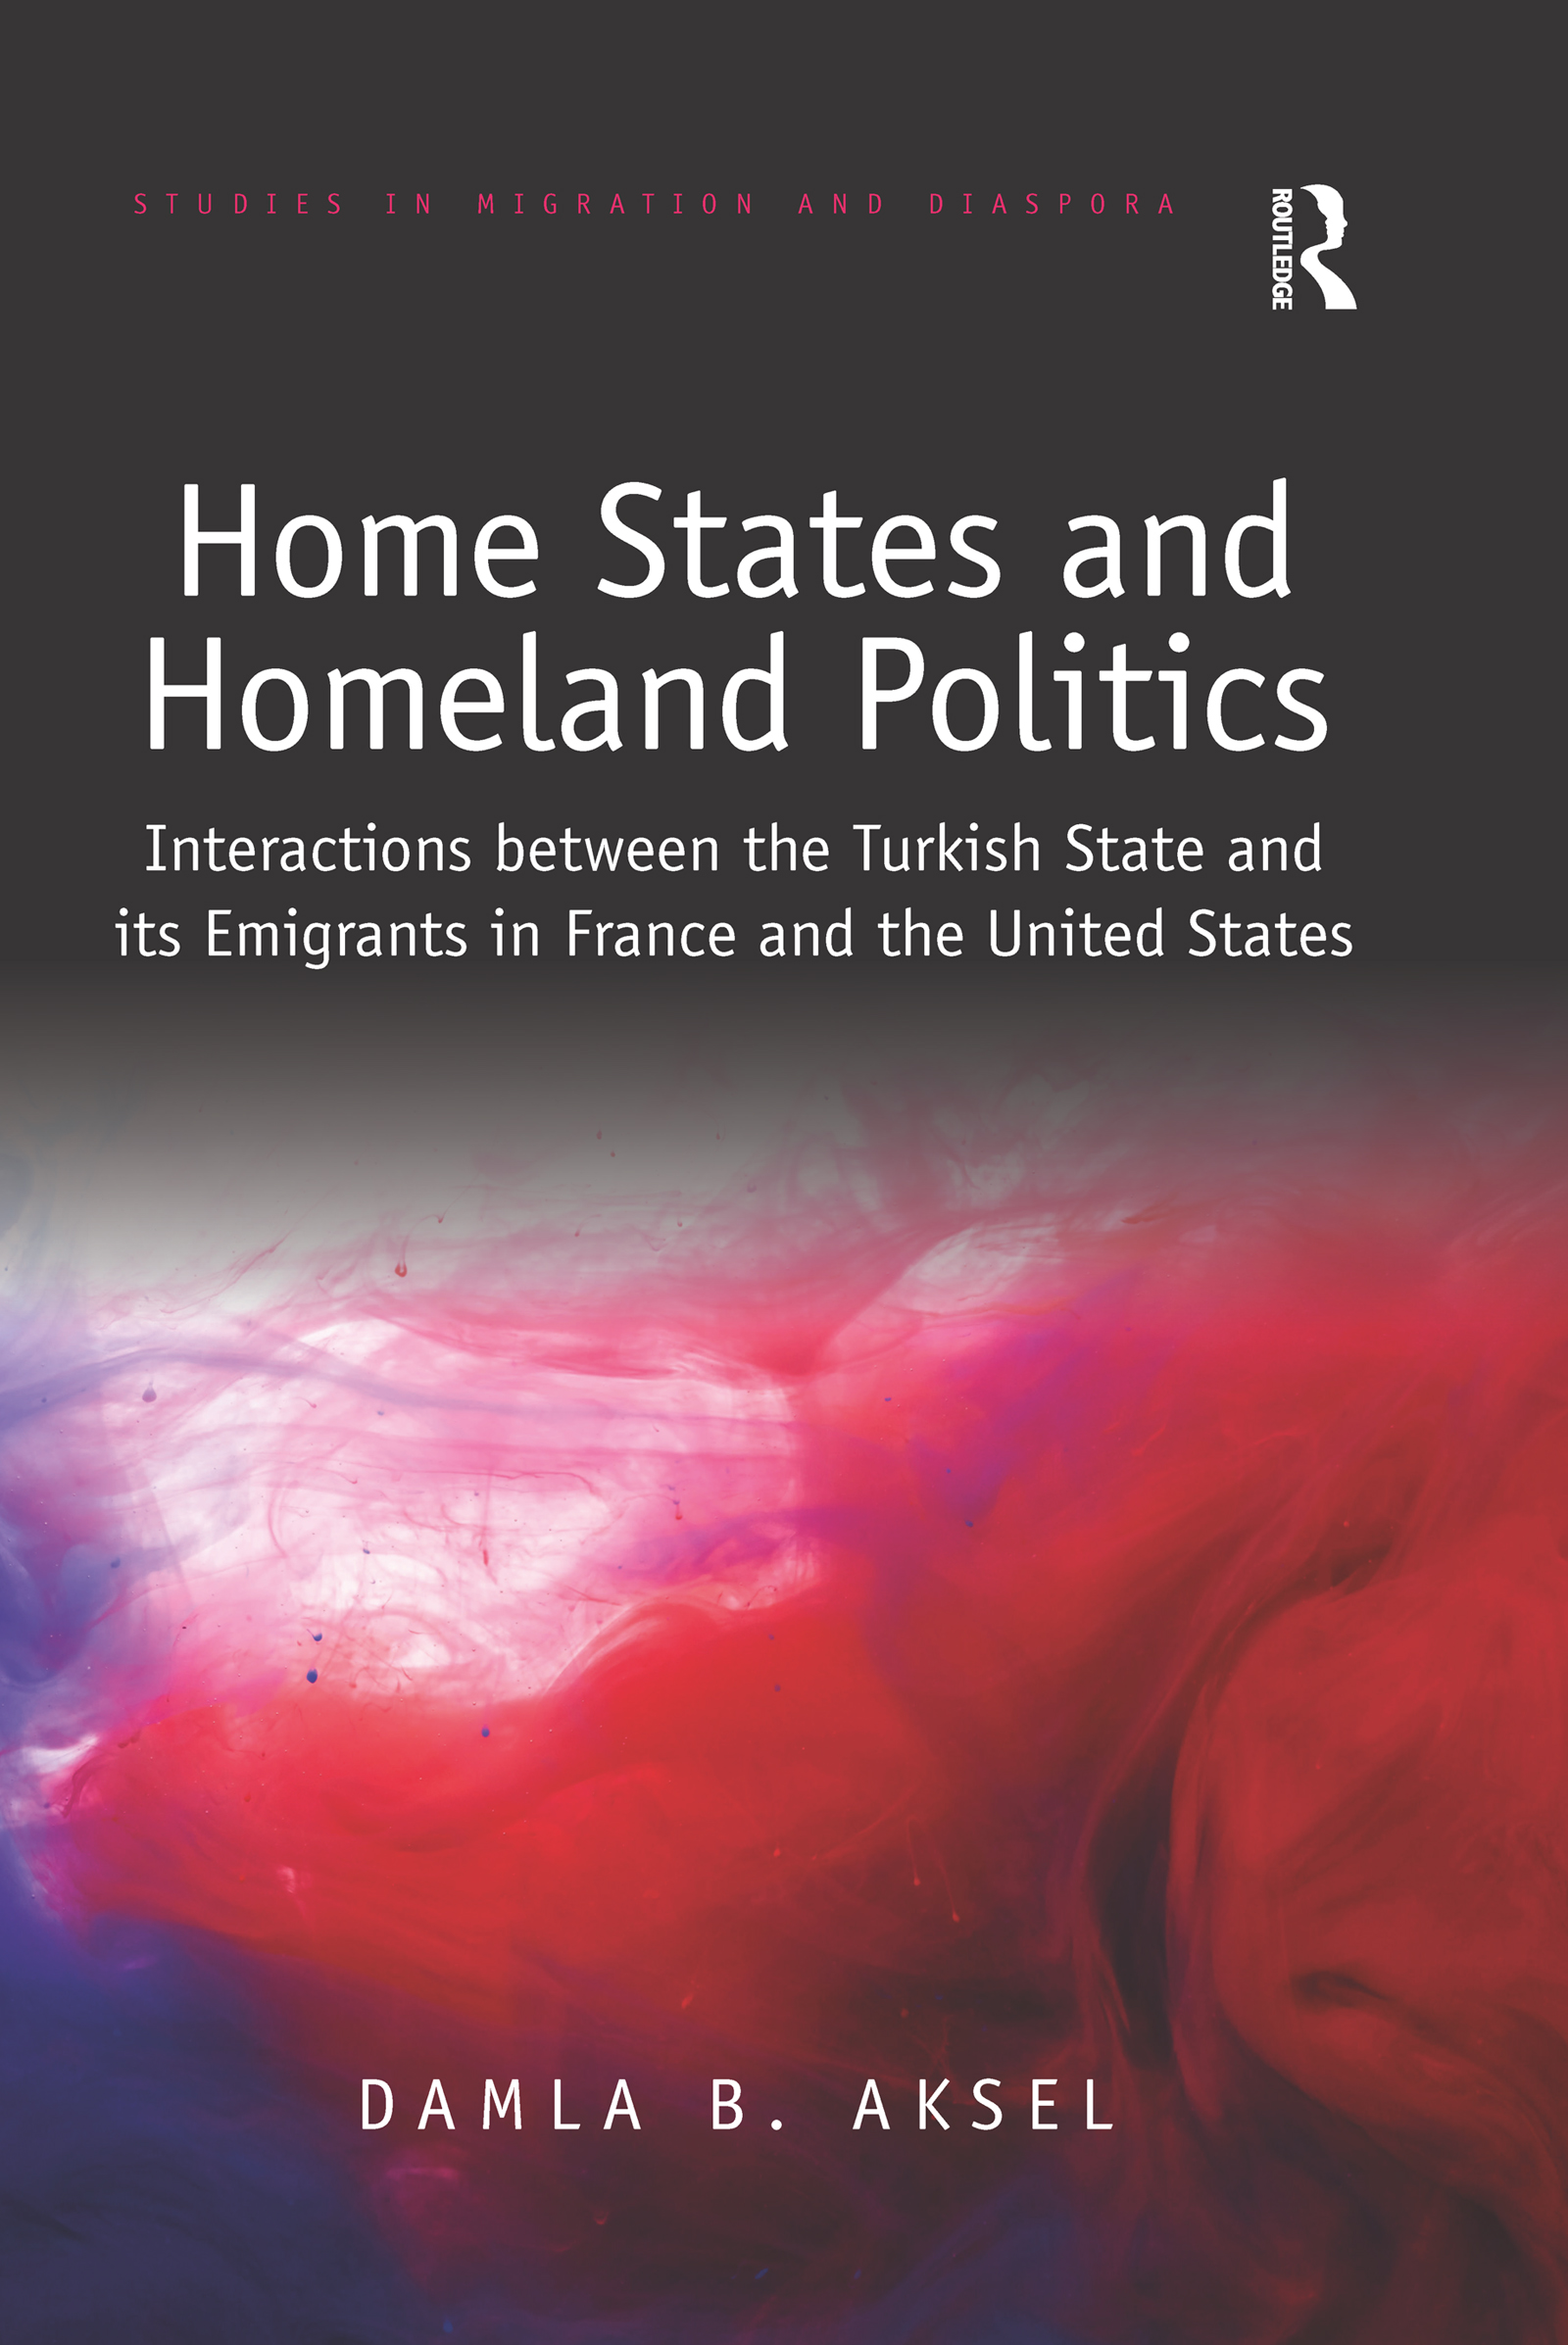 Home States and Homeland Politics